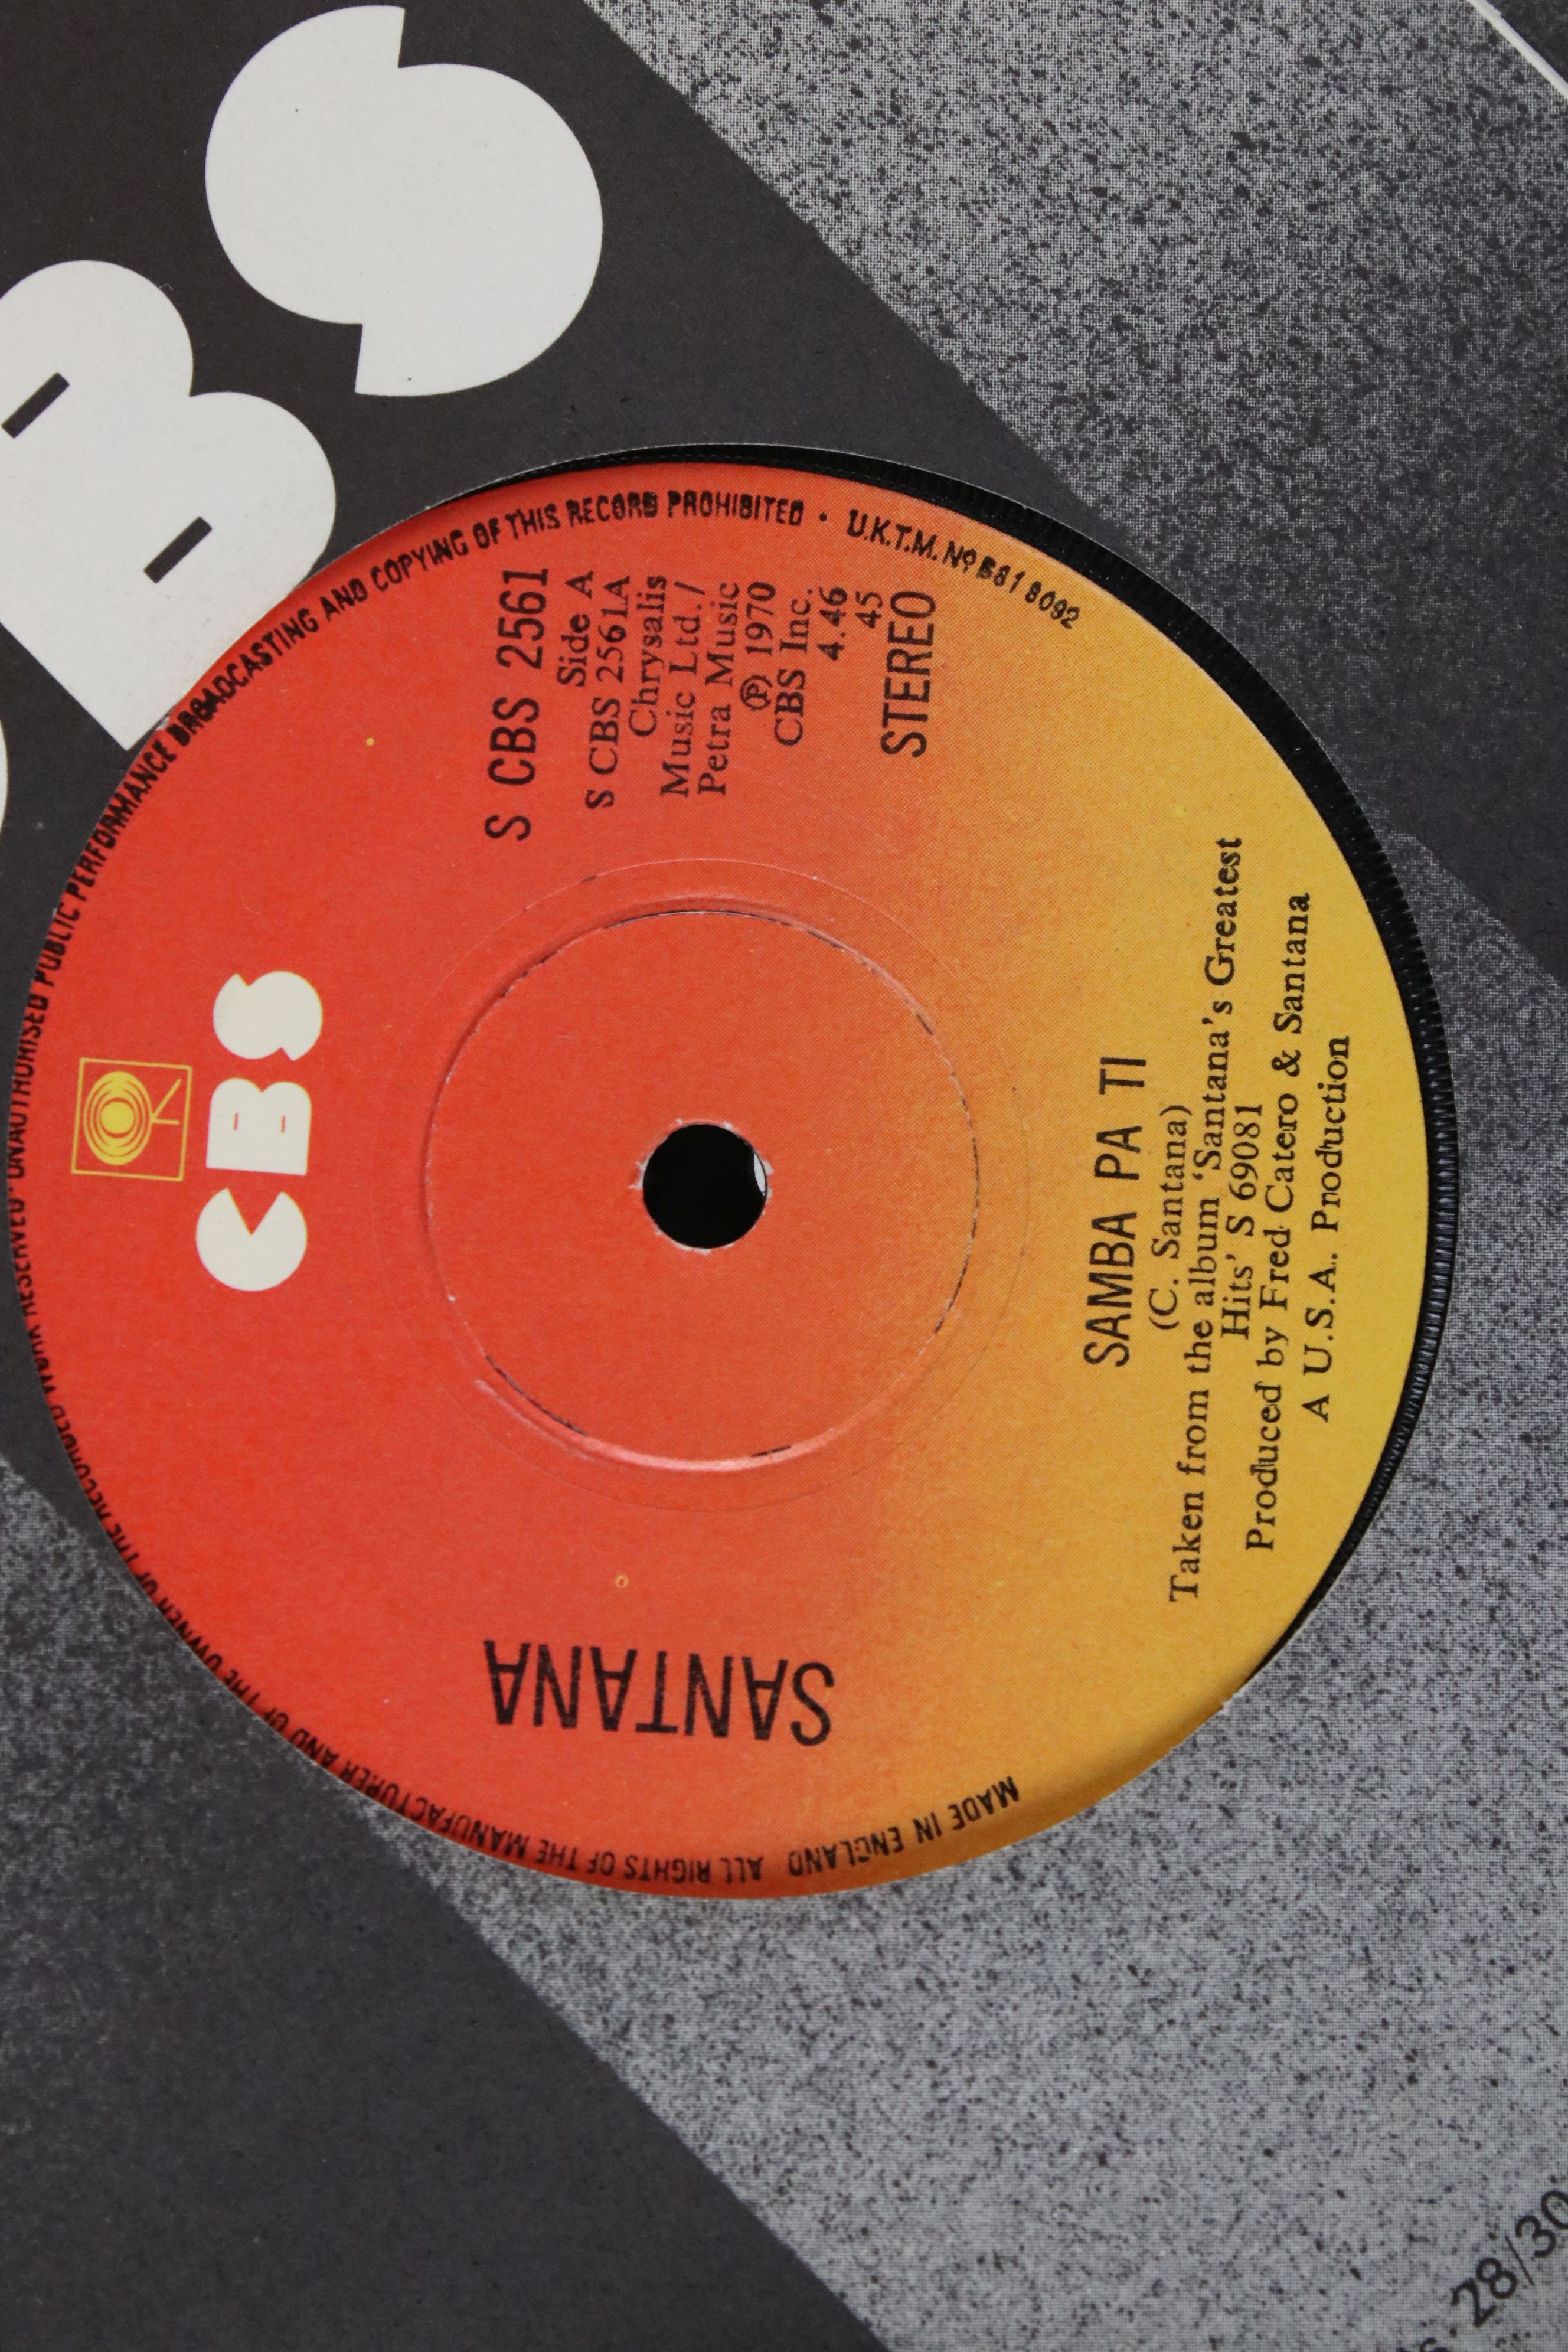 Vinyl - Collection of over 70 45's spanning genres and decades including Fleetwood Mac, Chicken - Image 13 of 15